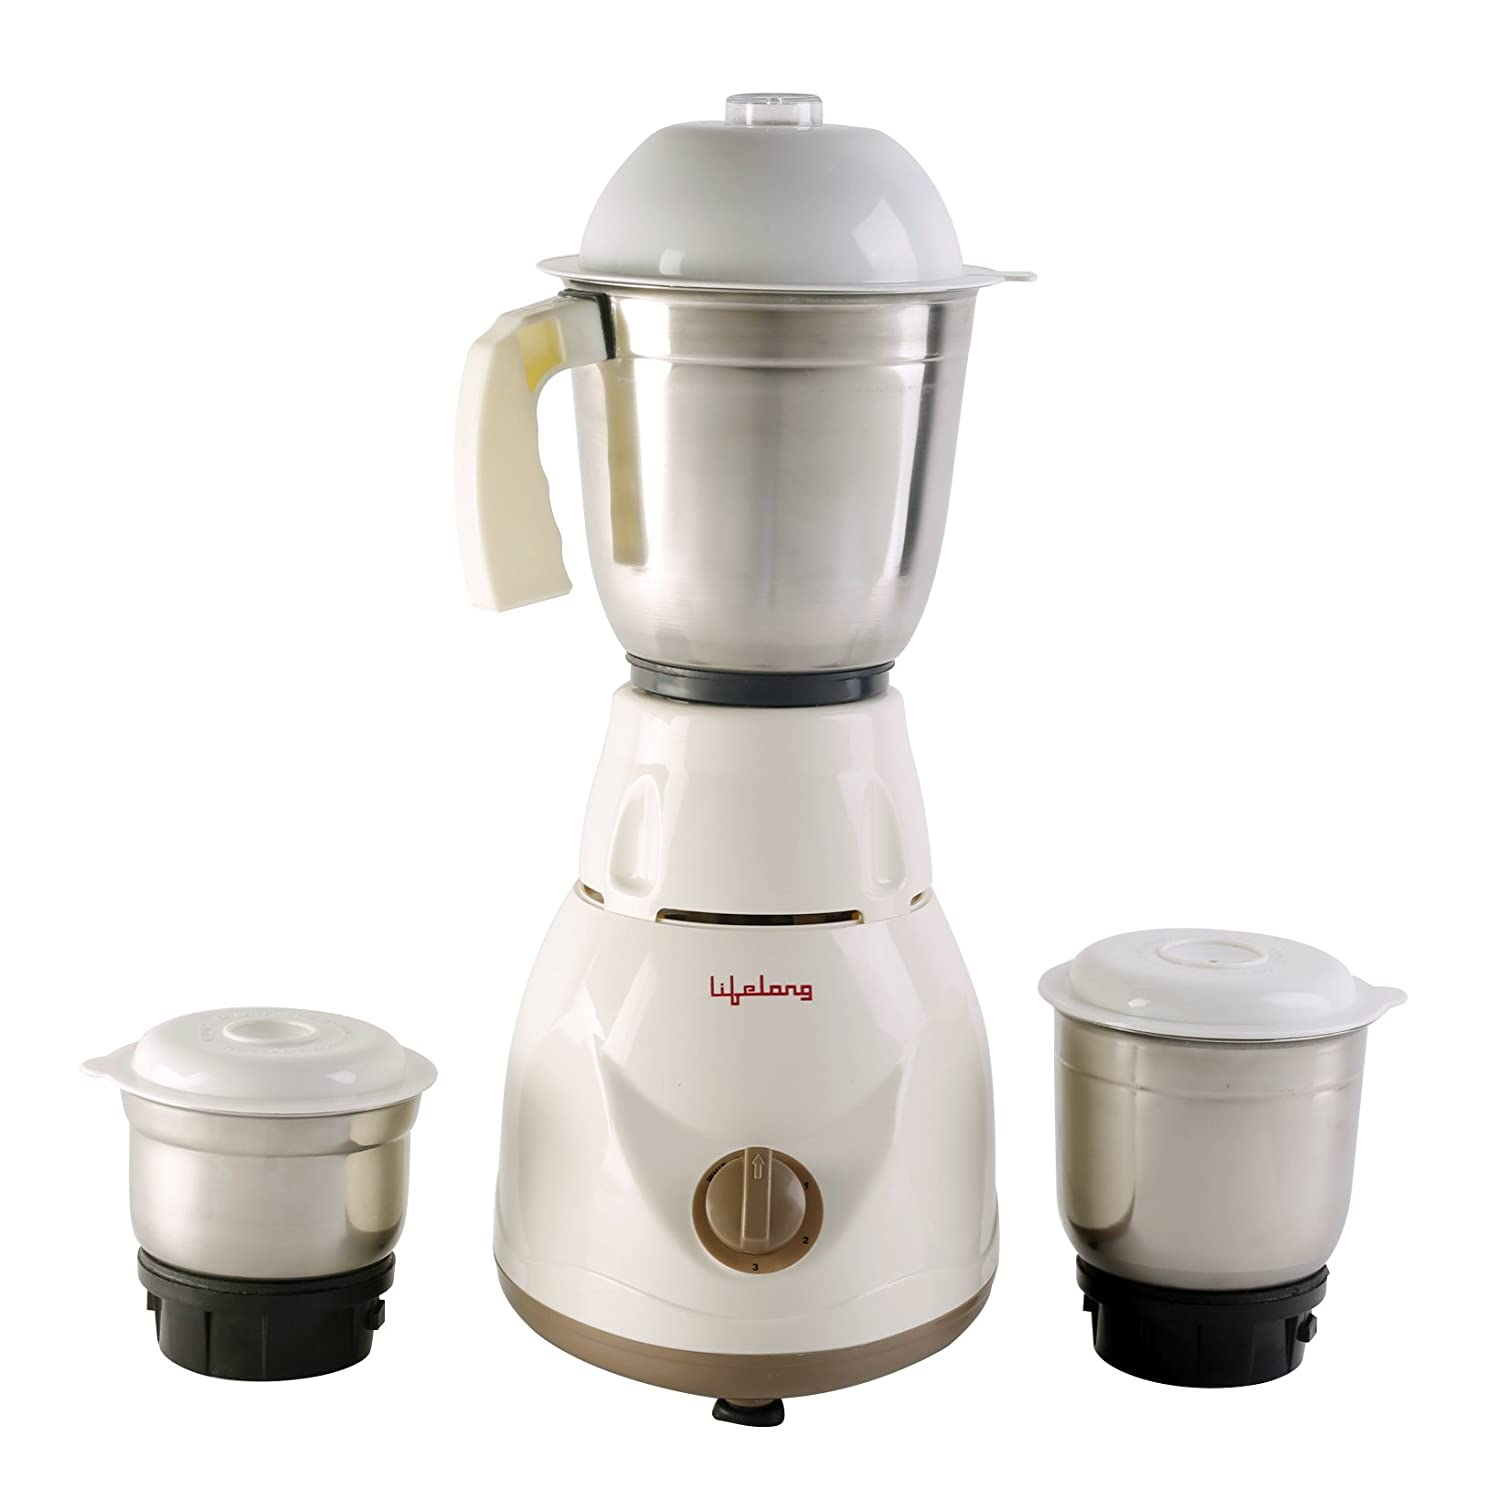 Lifelong Power Pro LLMG02 500-Watt Mixer Grinder with 3 Jars